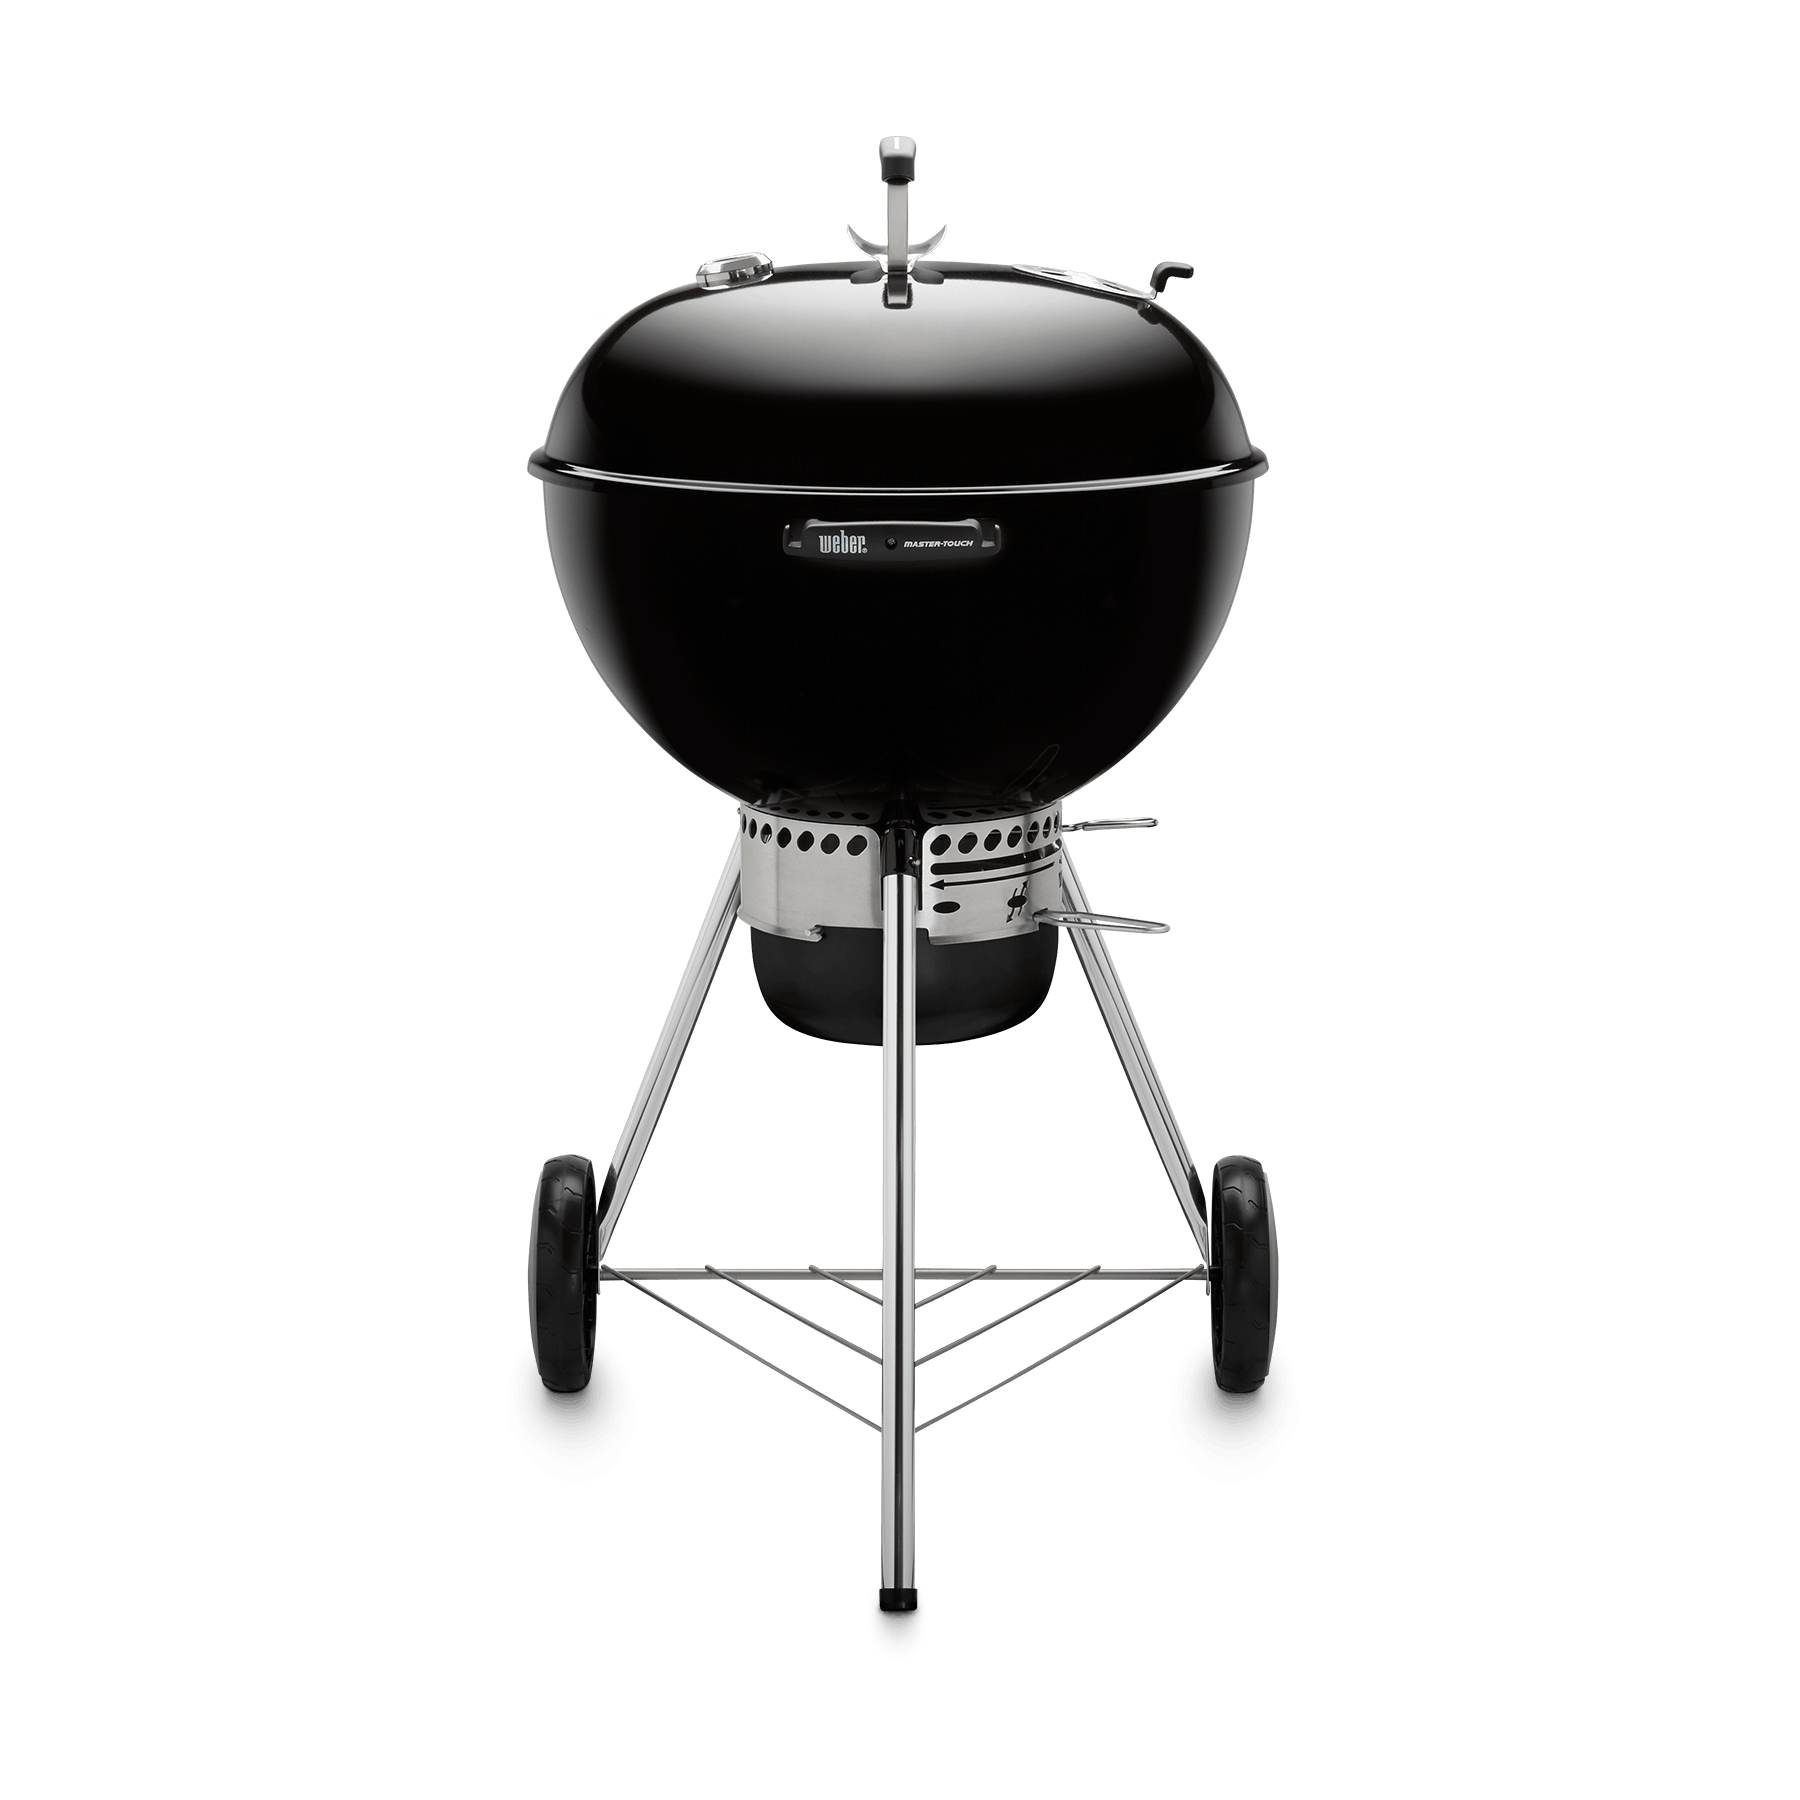 Weber Grill One Touch Weber One Touch Premium Charcoal Bbq Black Expert Event